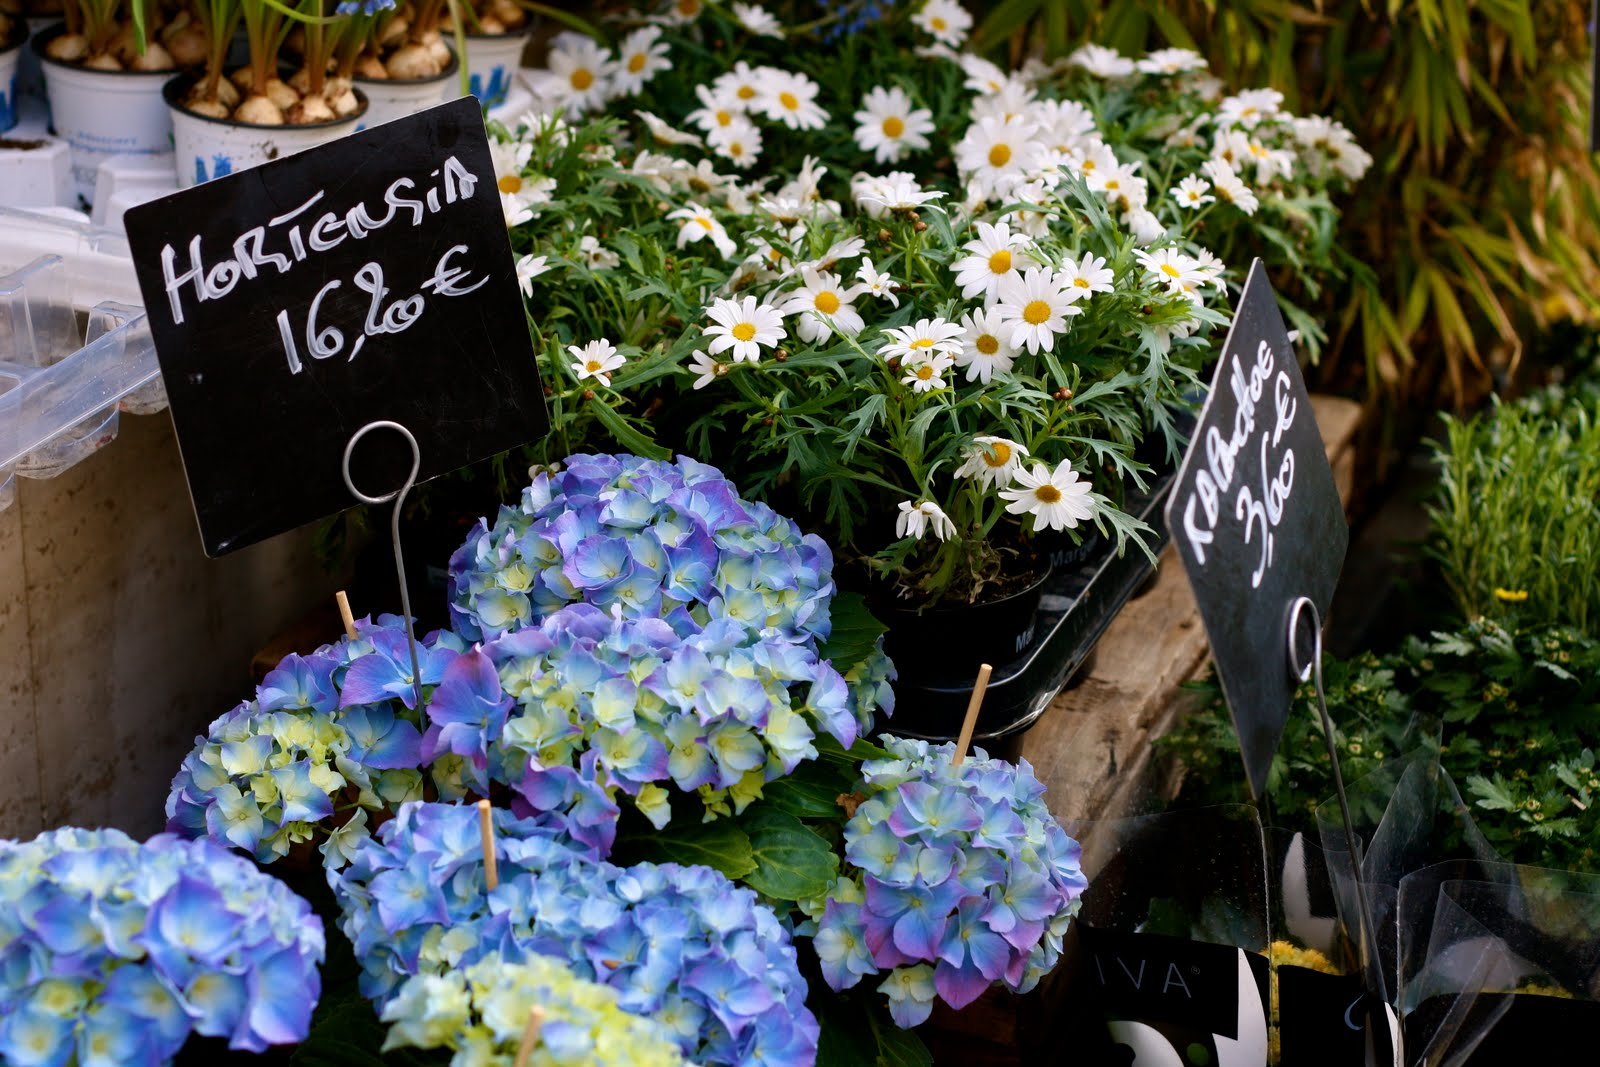 Flowers for sale in Brussels, Belgium